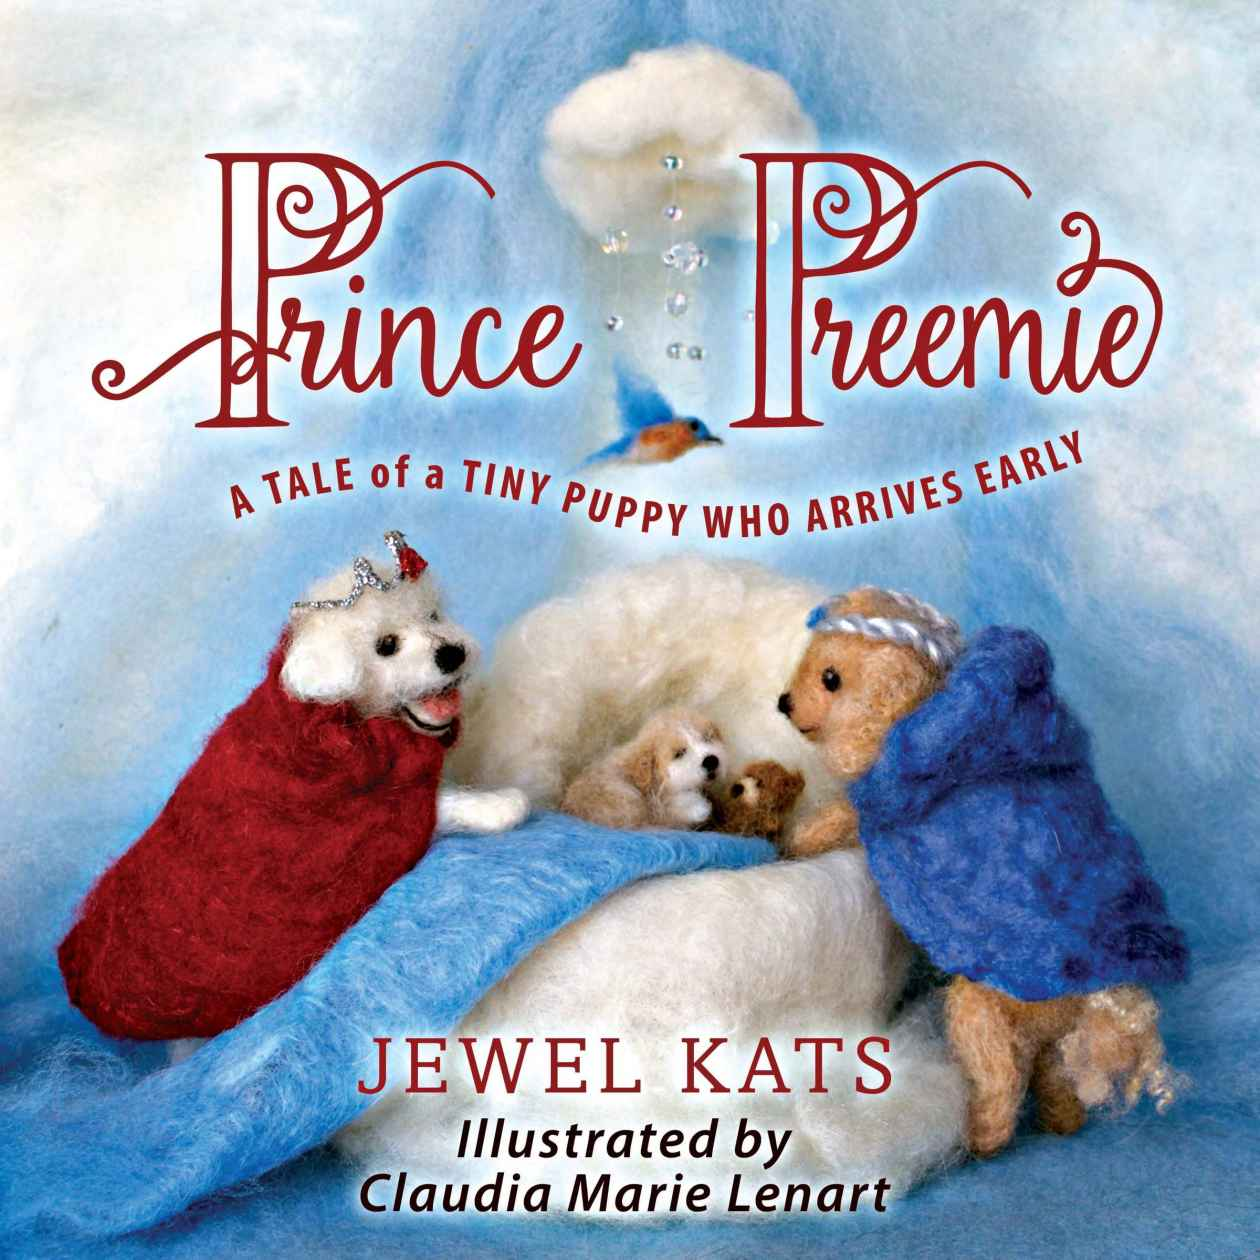 Prince Preemie: A Tale Of A Tiny Puppy Who Arrives Early By Jewel Kats  (author), Claudia Marie Lenart (illustrator) The King And Queen